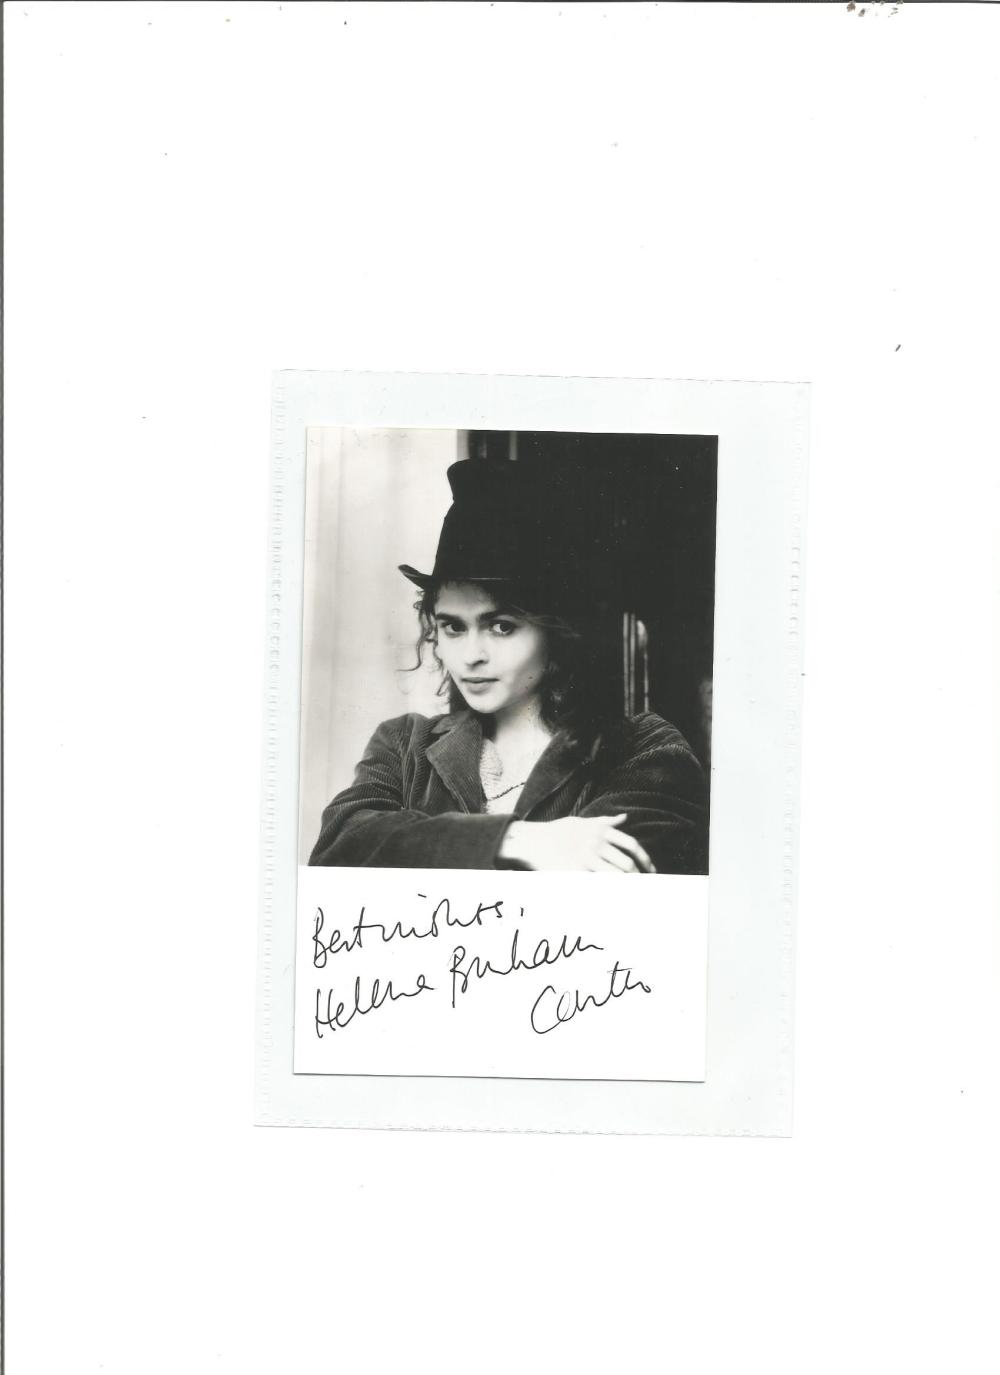 Helena Bonham Carter signed 6x3 b/w photo as Bellatrix Lestrange in Harry Potter. Good Condition.